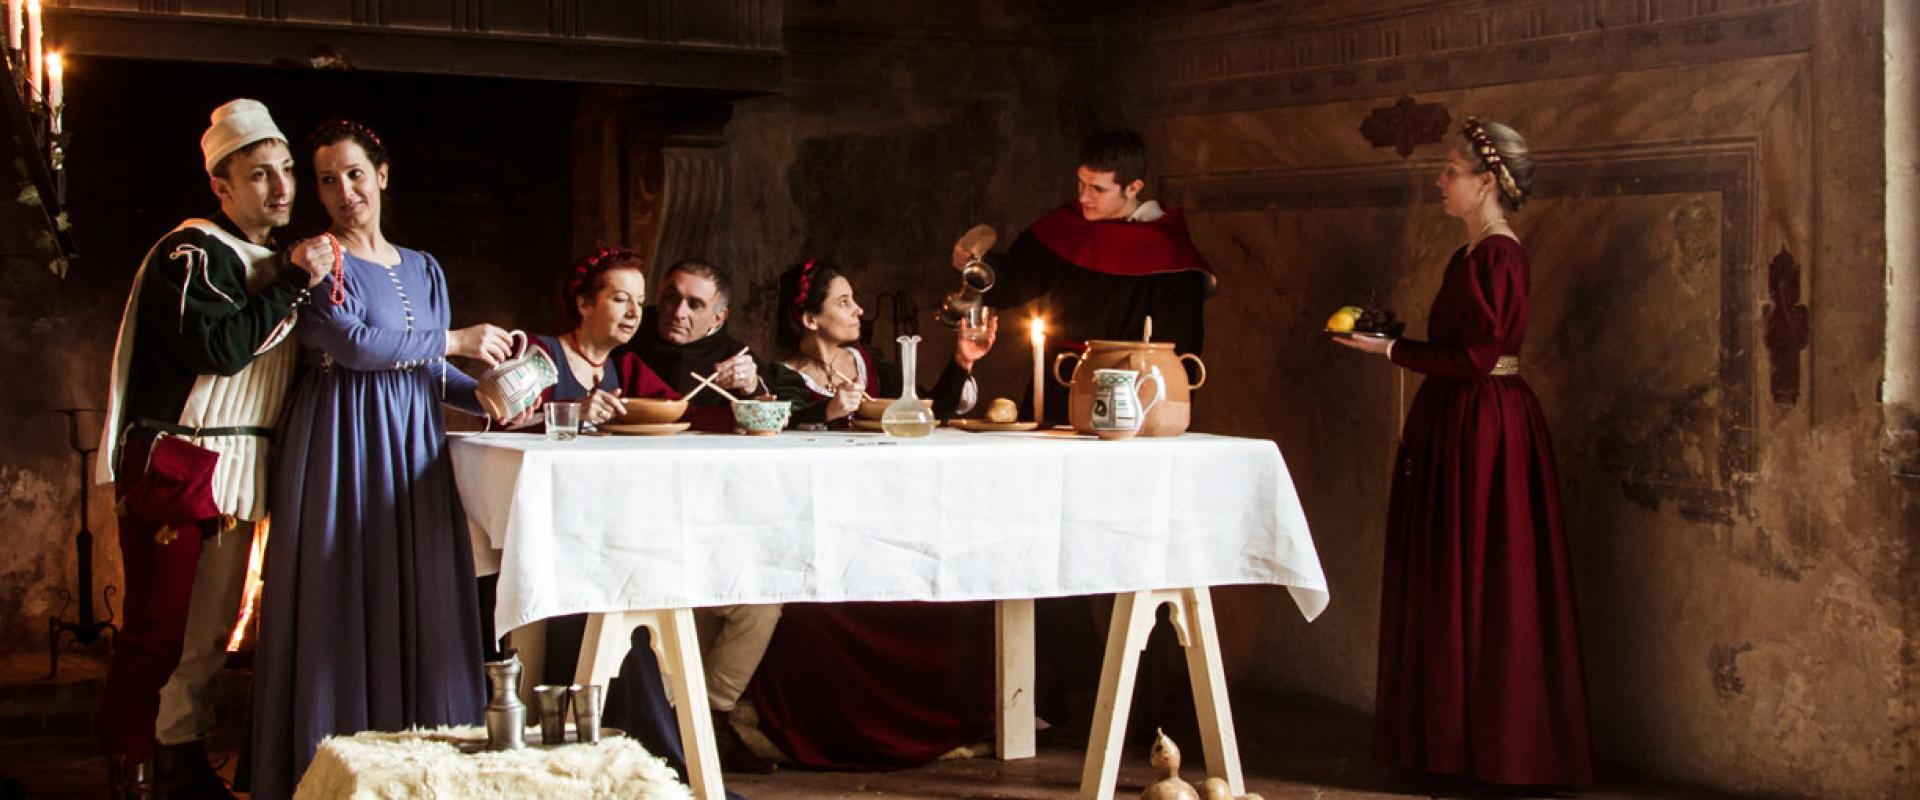 Medieval dinner in historical house